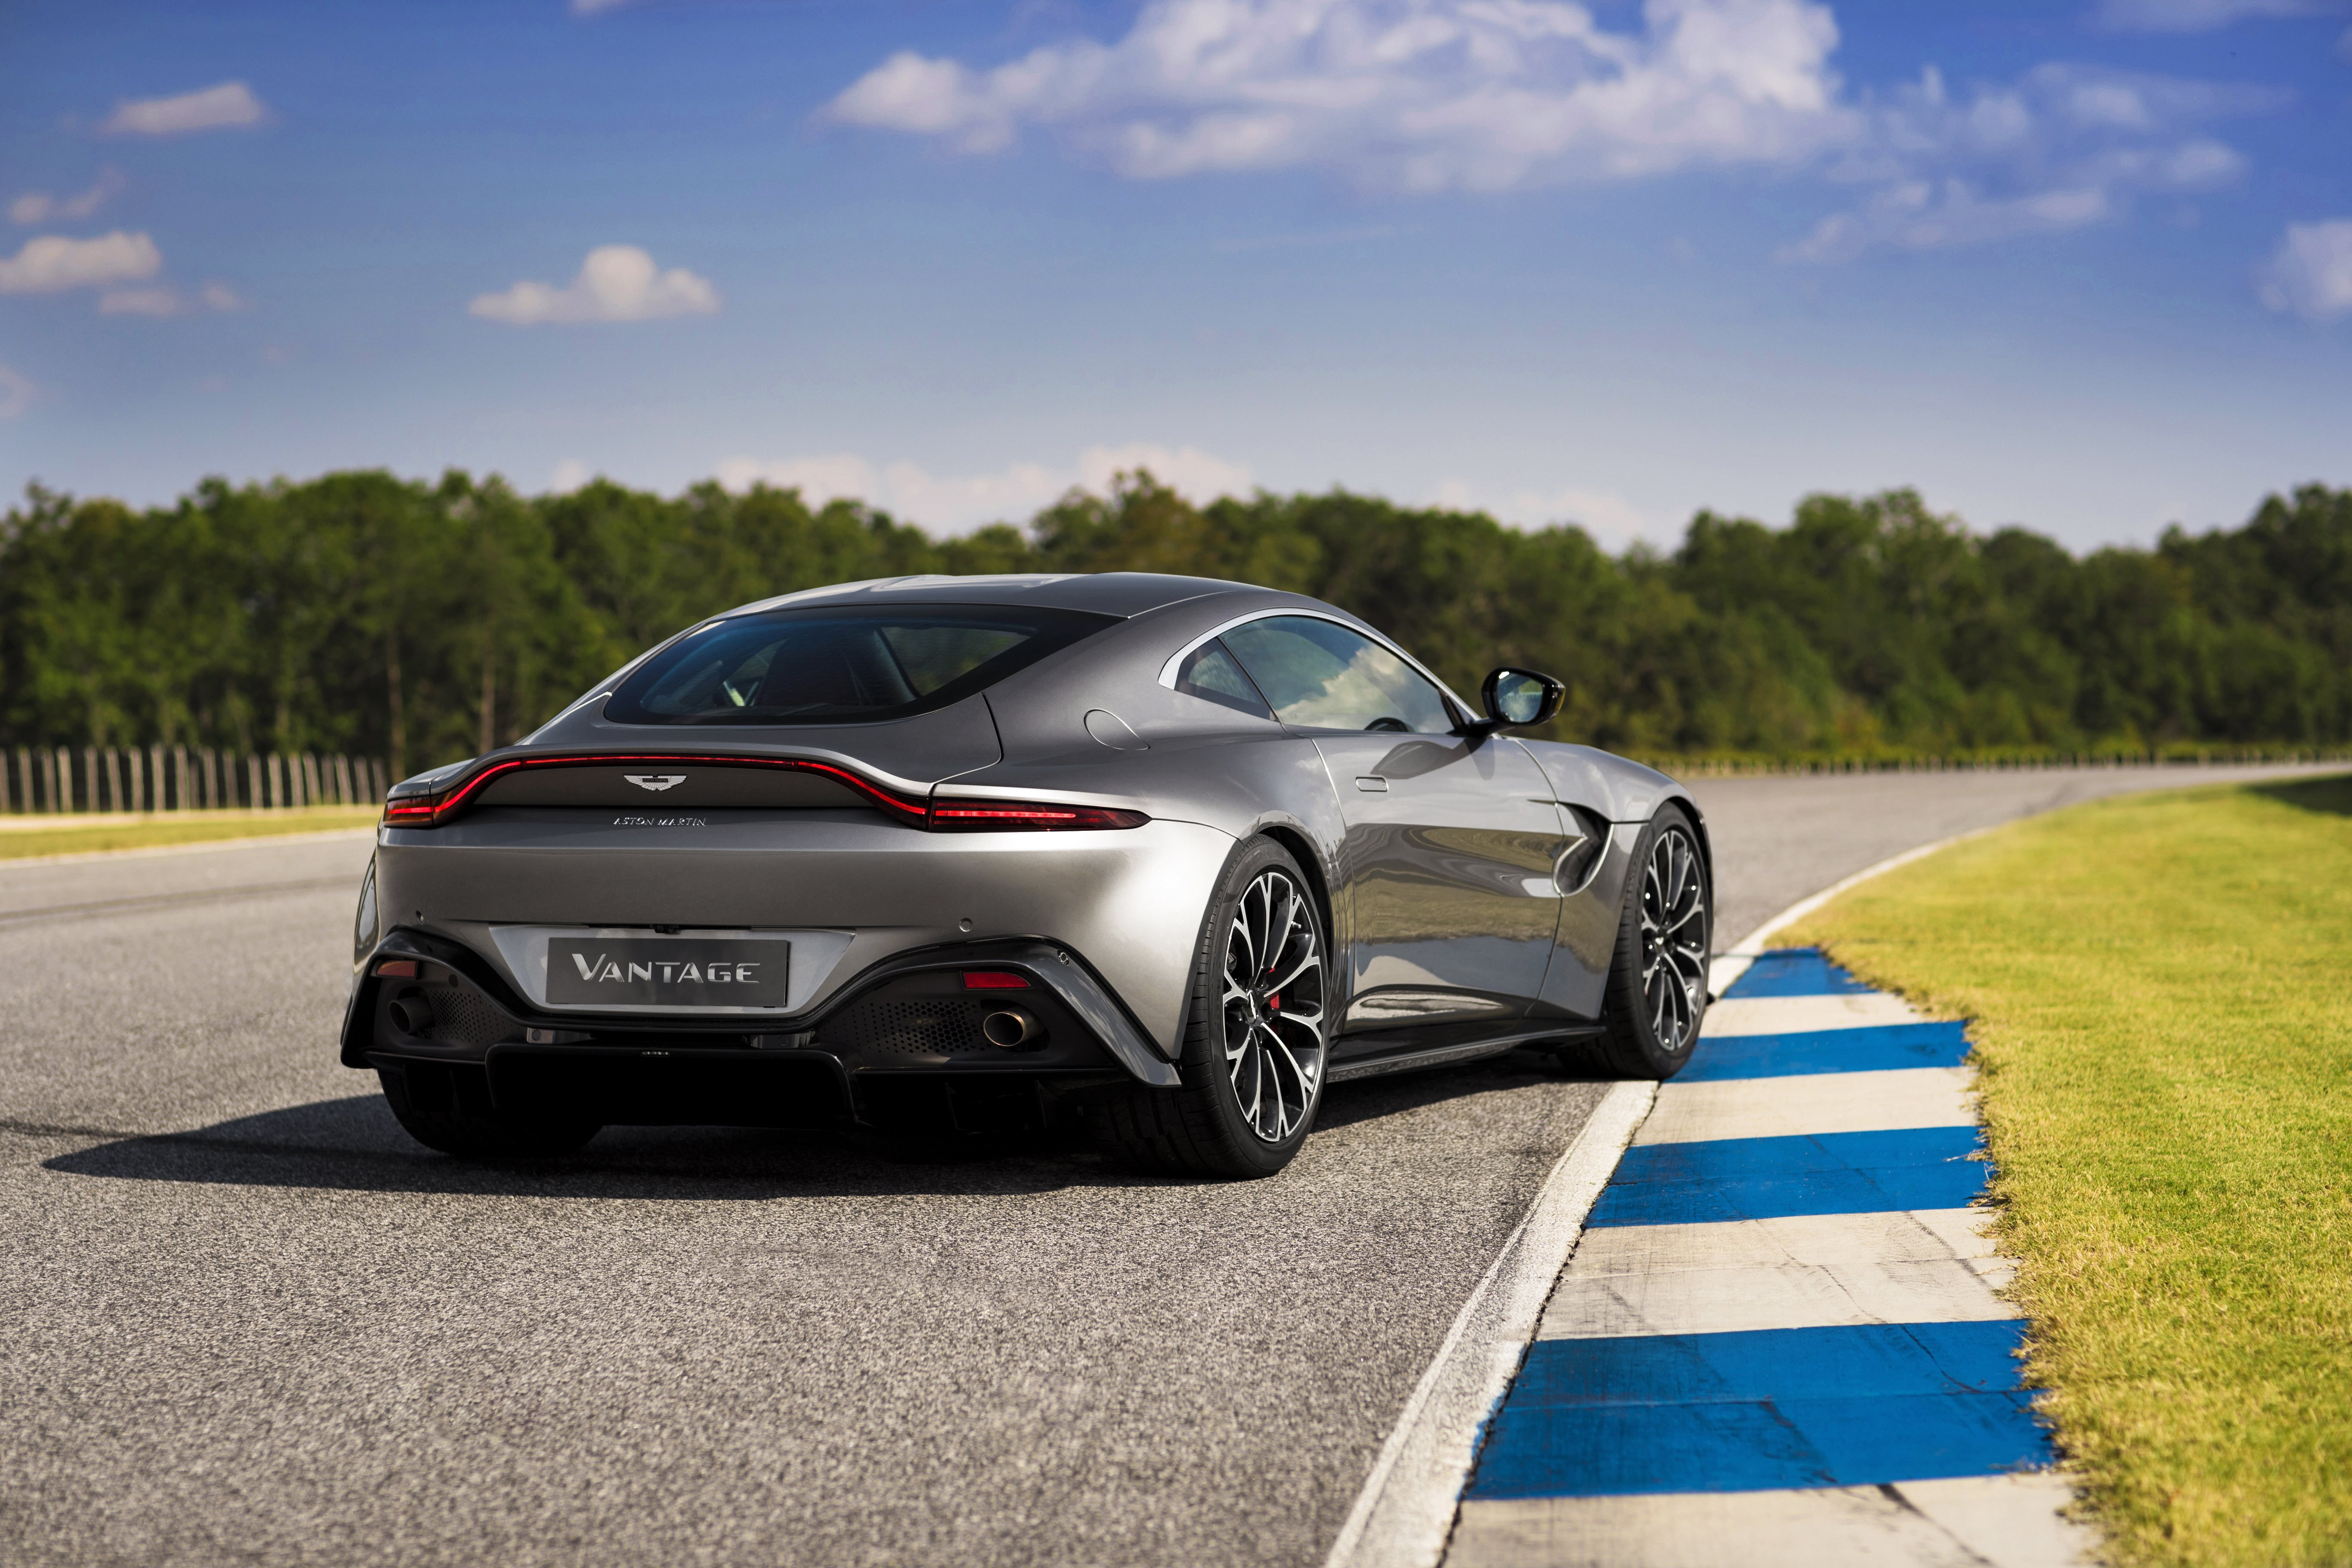 2020 Aston Martin V8 Vantage Confirmed To Add Manual Transmission